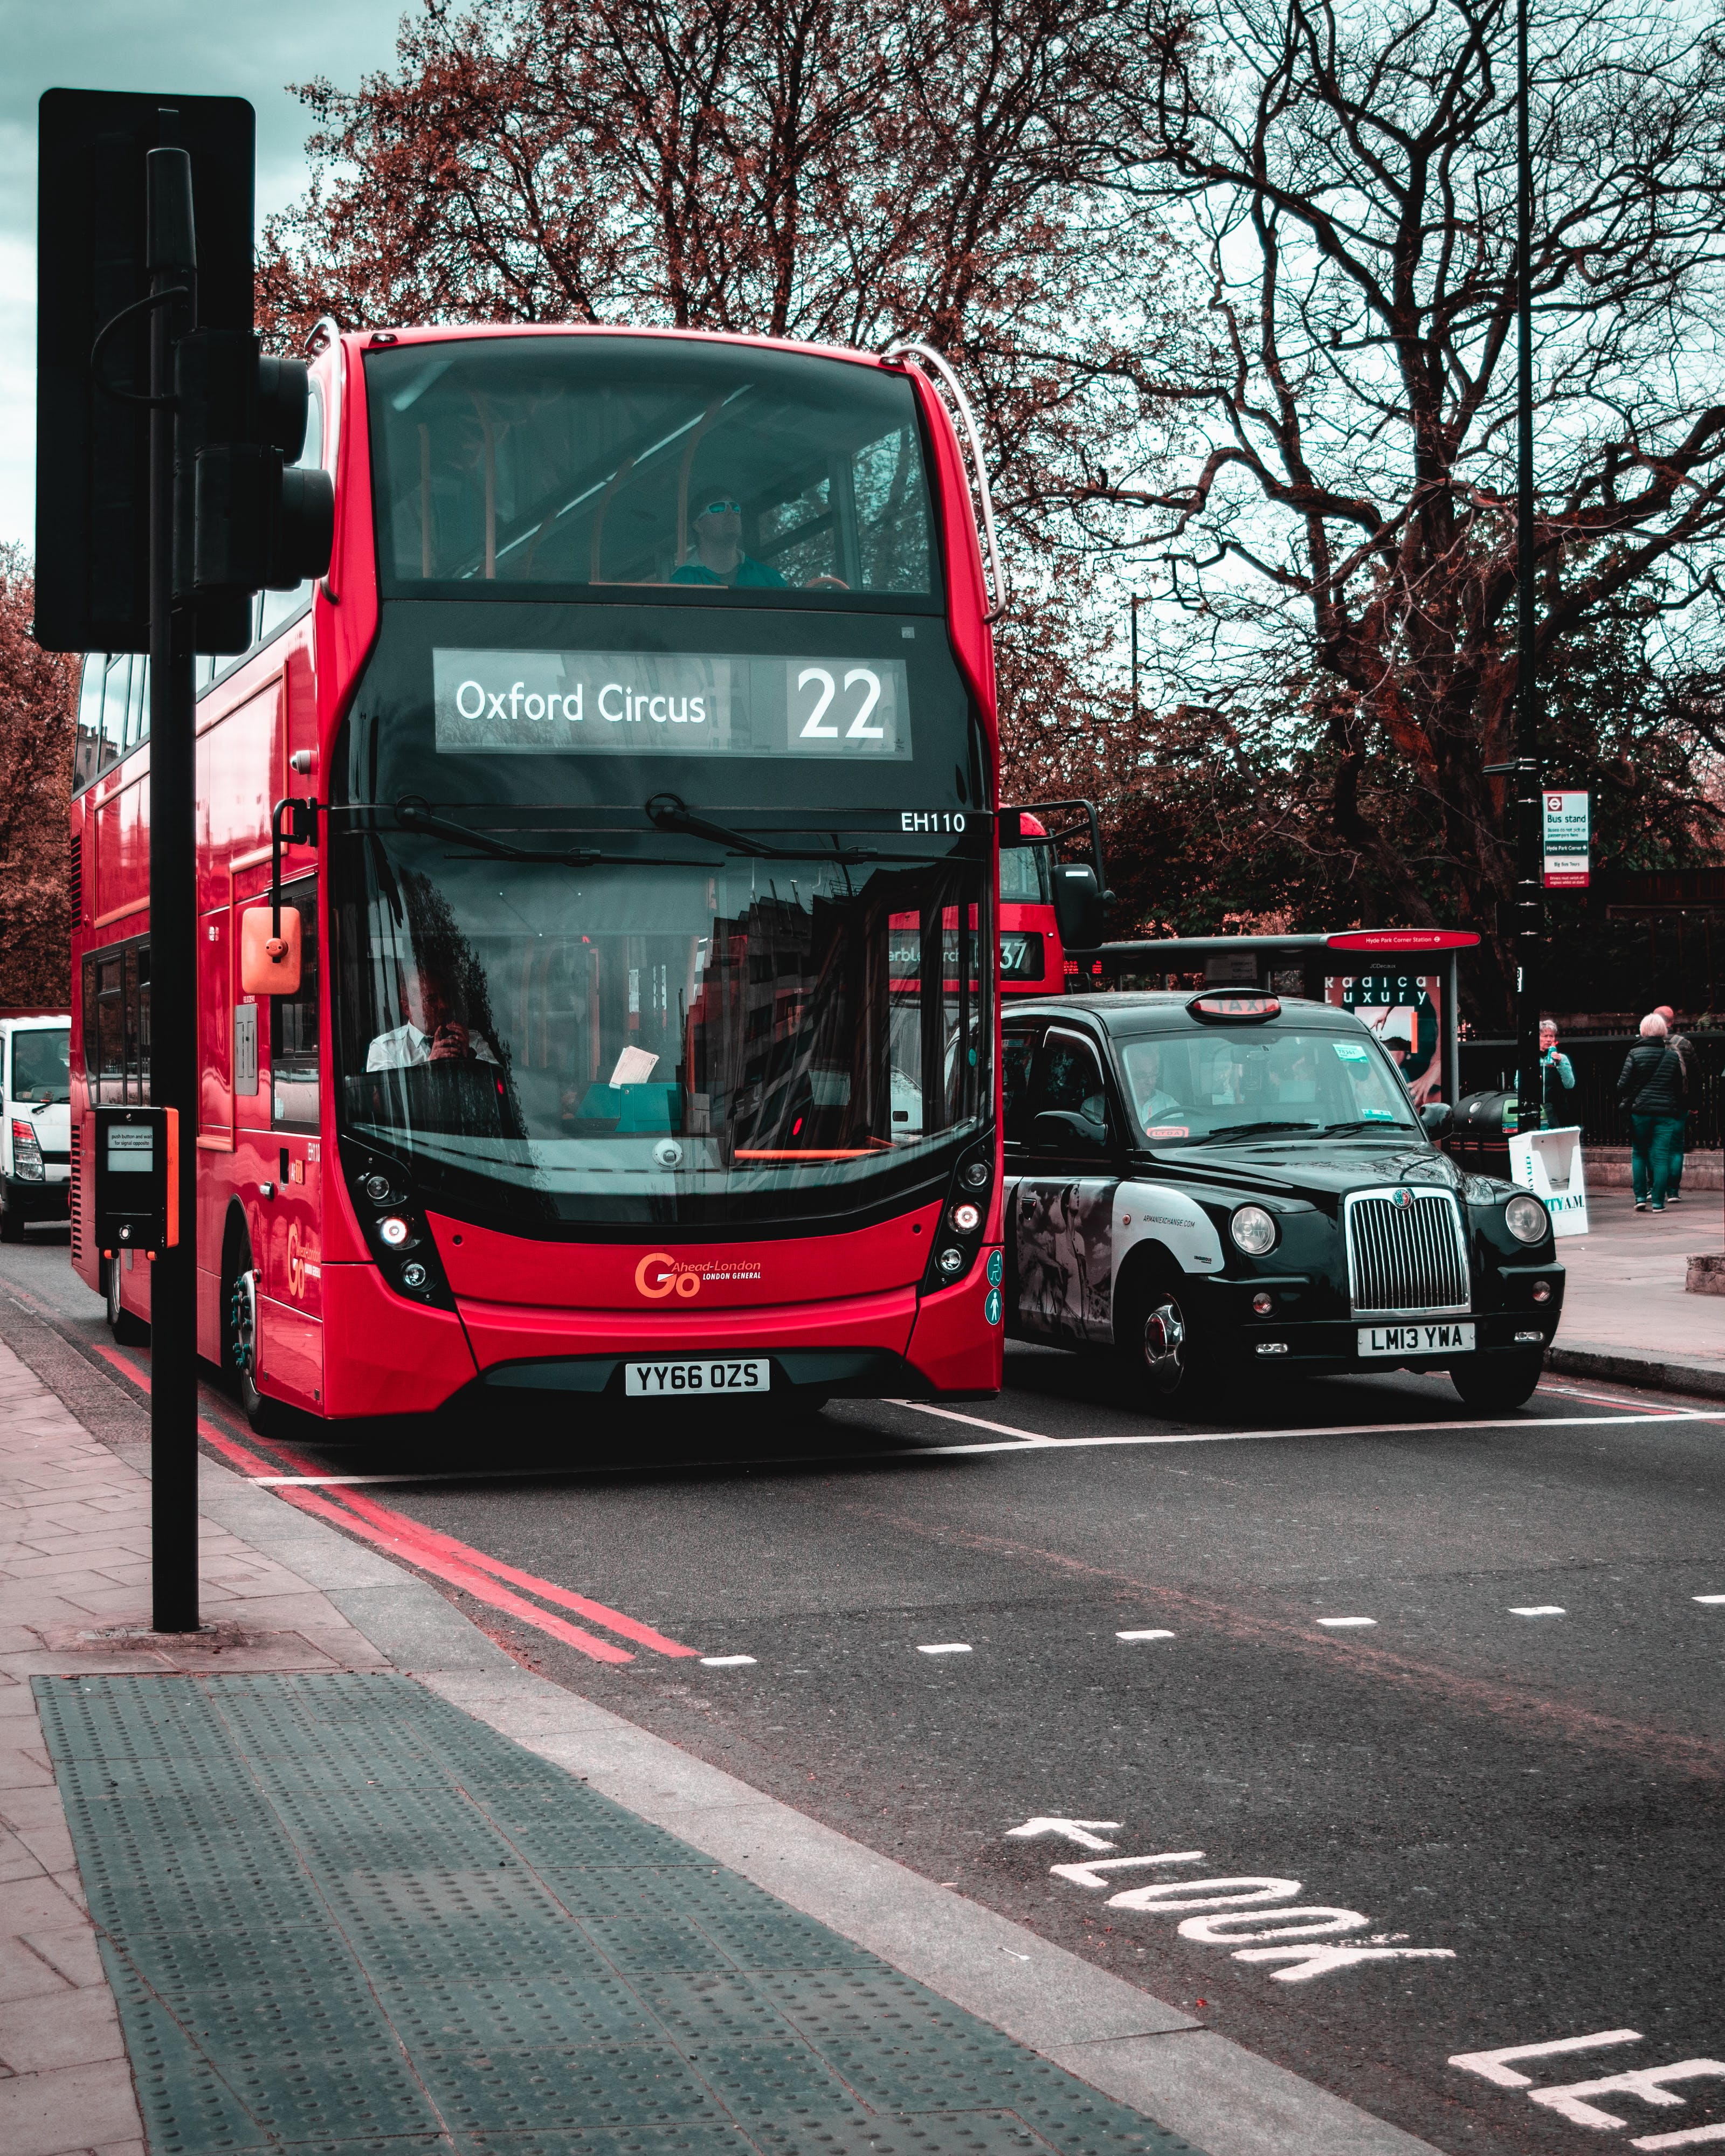 Red Double-Decker Bus Beside Black Taxi Cab On Asphalt Road